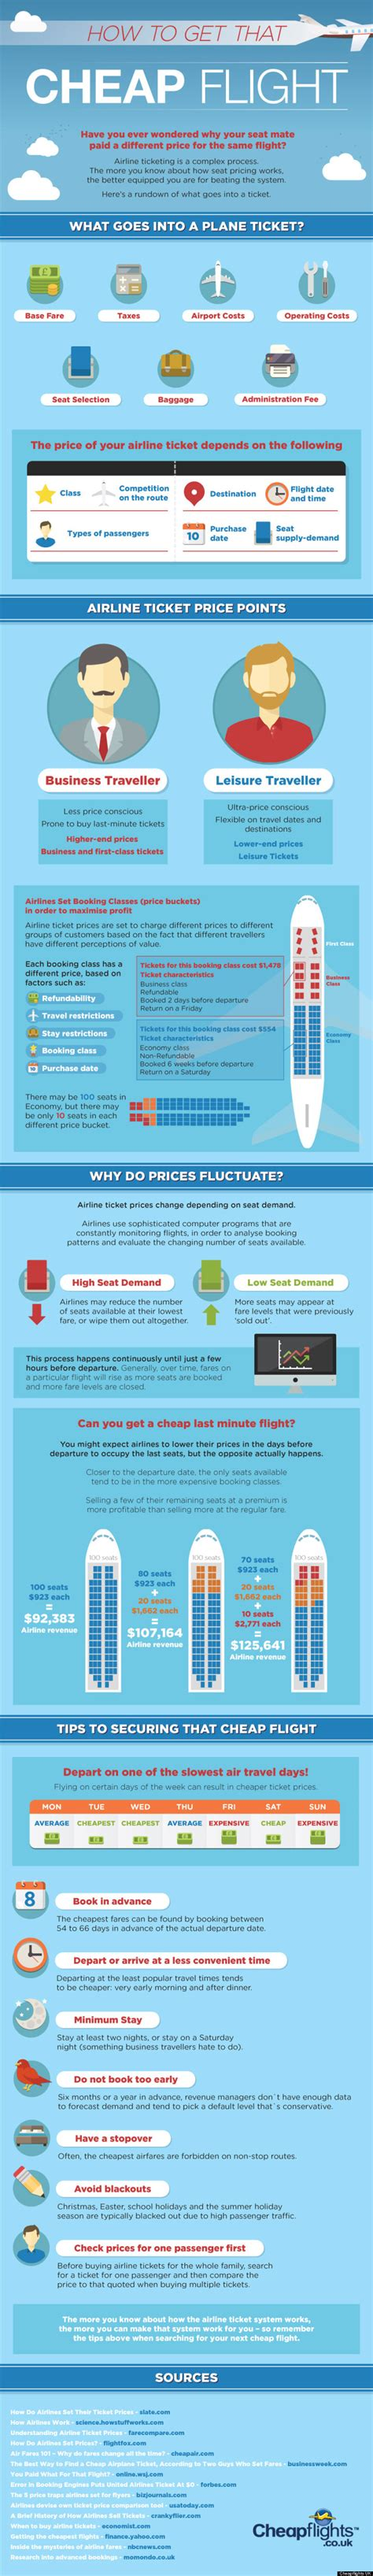 cheap flights 101 how to snag an inexpensive plane ticket infographic